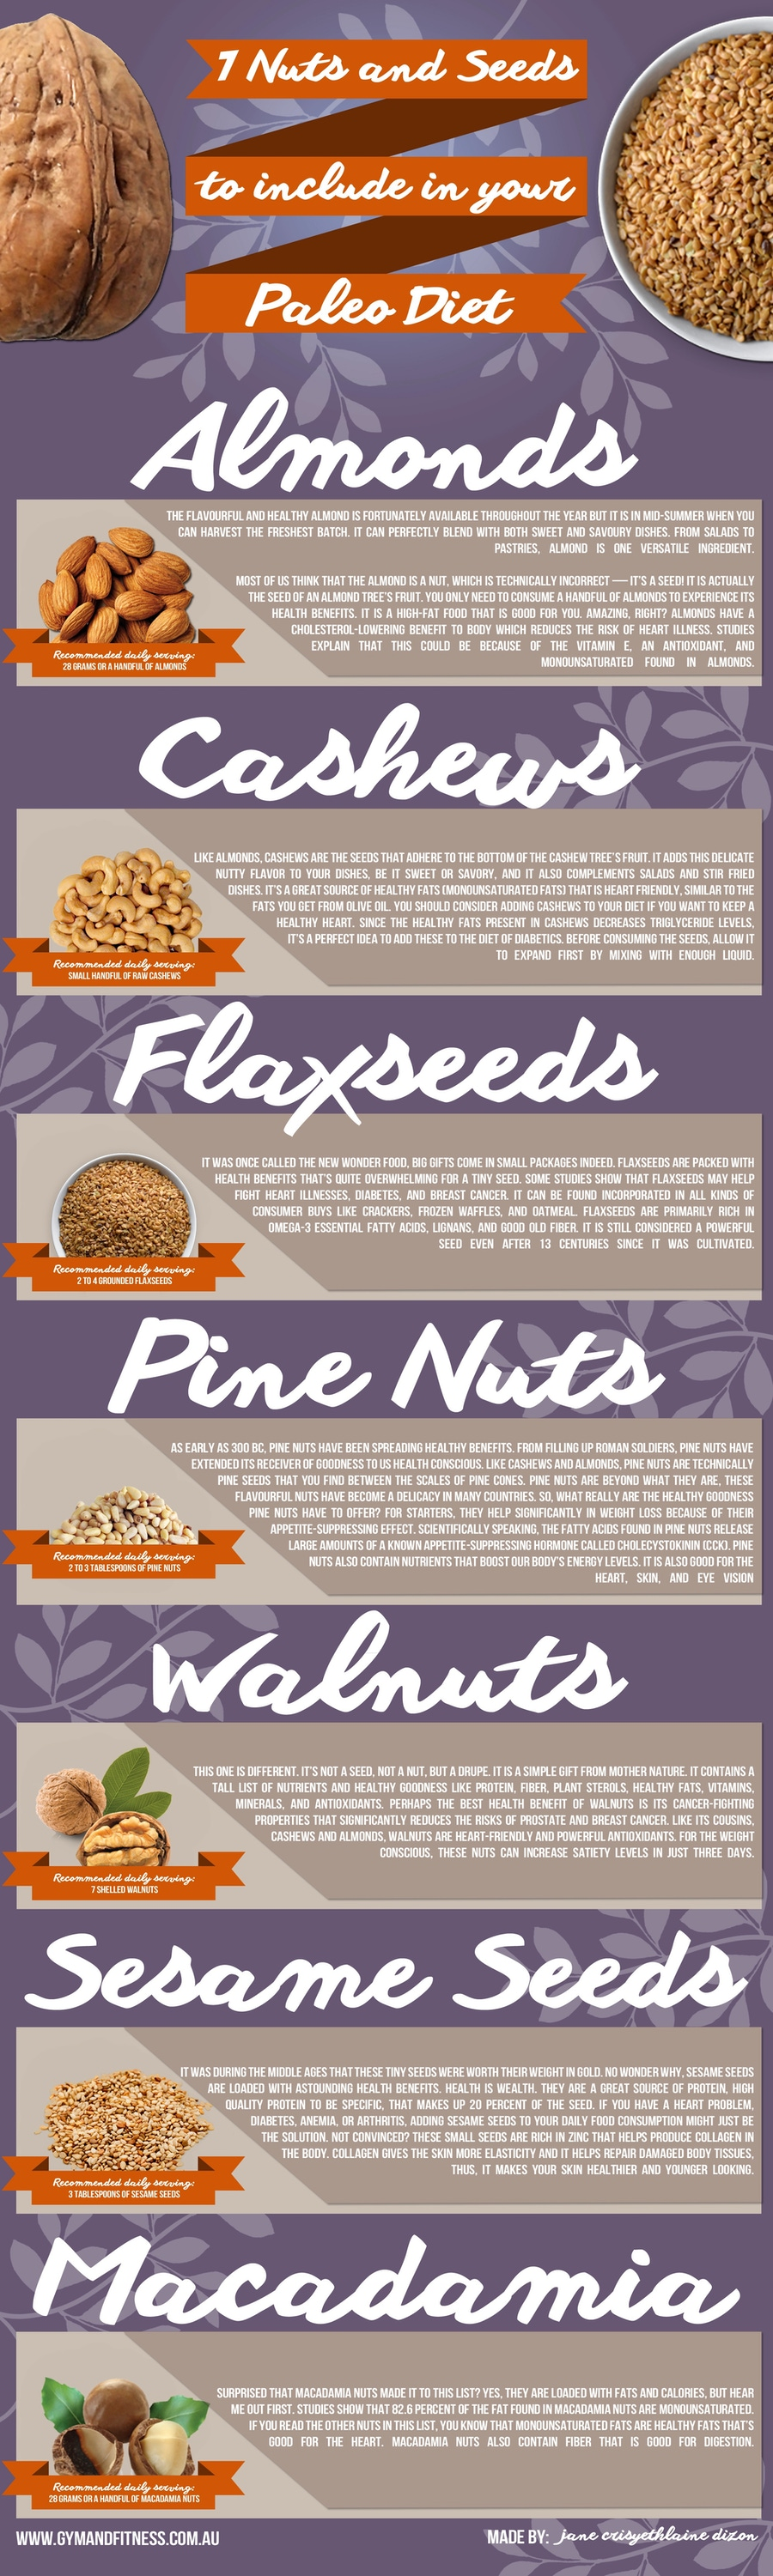 https://thepaleodiet.imgix.net/images/7-Healthy-Nuts-And-Seeds-To-Include-In-Your-Paleo-Diet-The-Paleo-Diet.jpg?auto=compress%2Cformat&crop=focalpoint&fit=crop&fp-x=0.5&fp-y=0.5&q=95&w=900